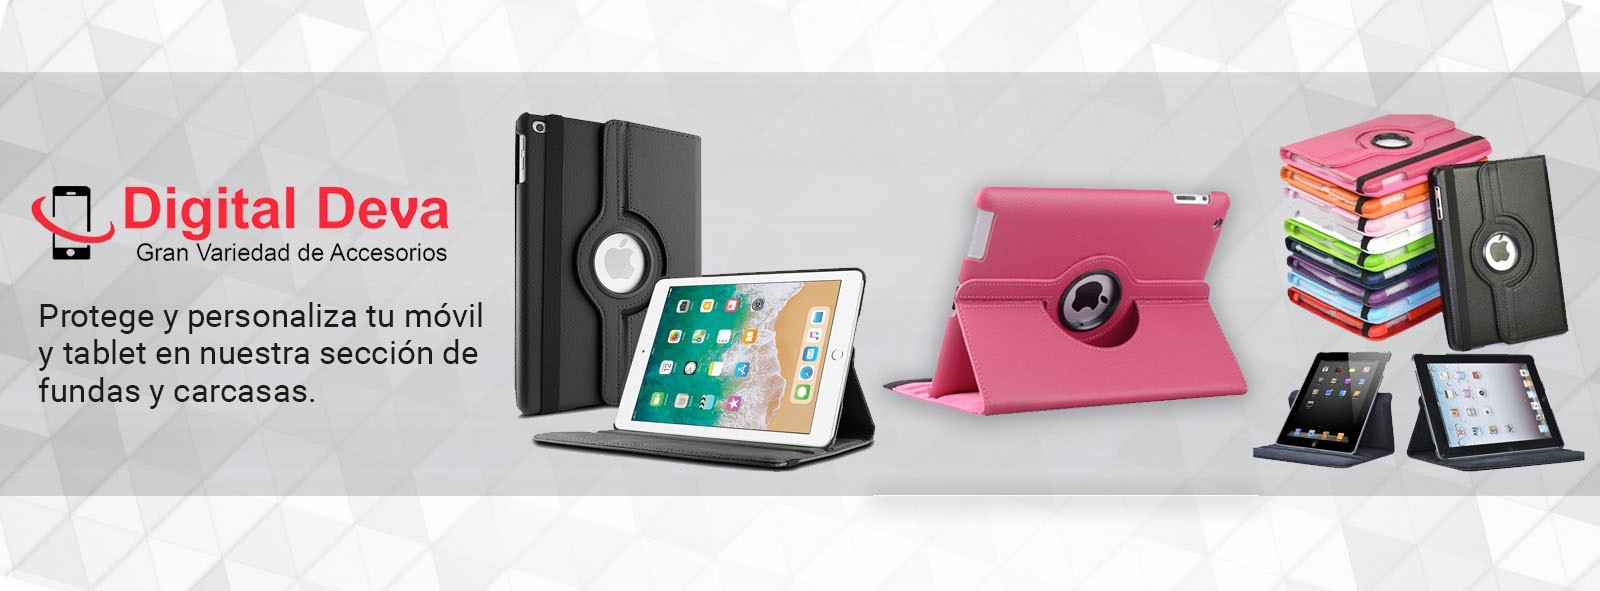 Digital Deva - Mayorista de accesorios moviles y tablets